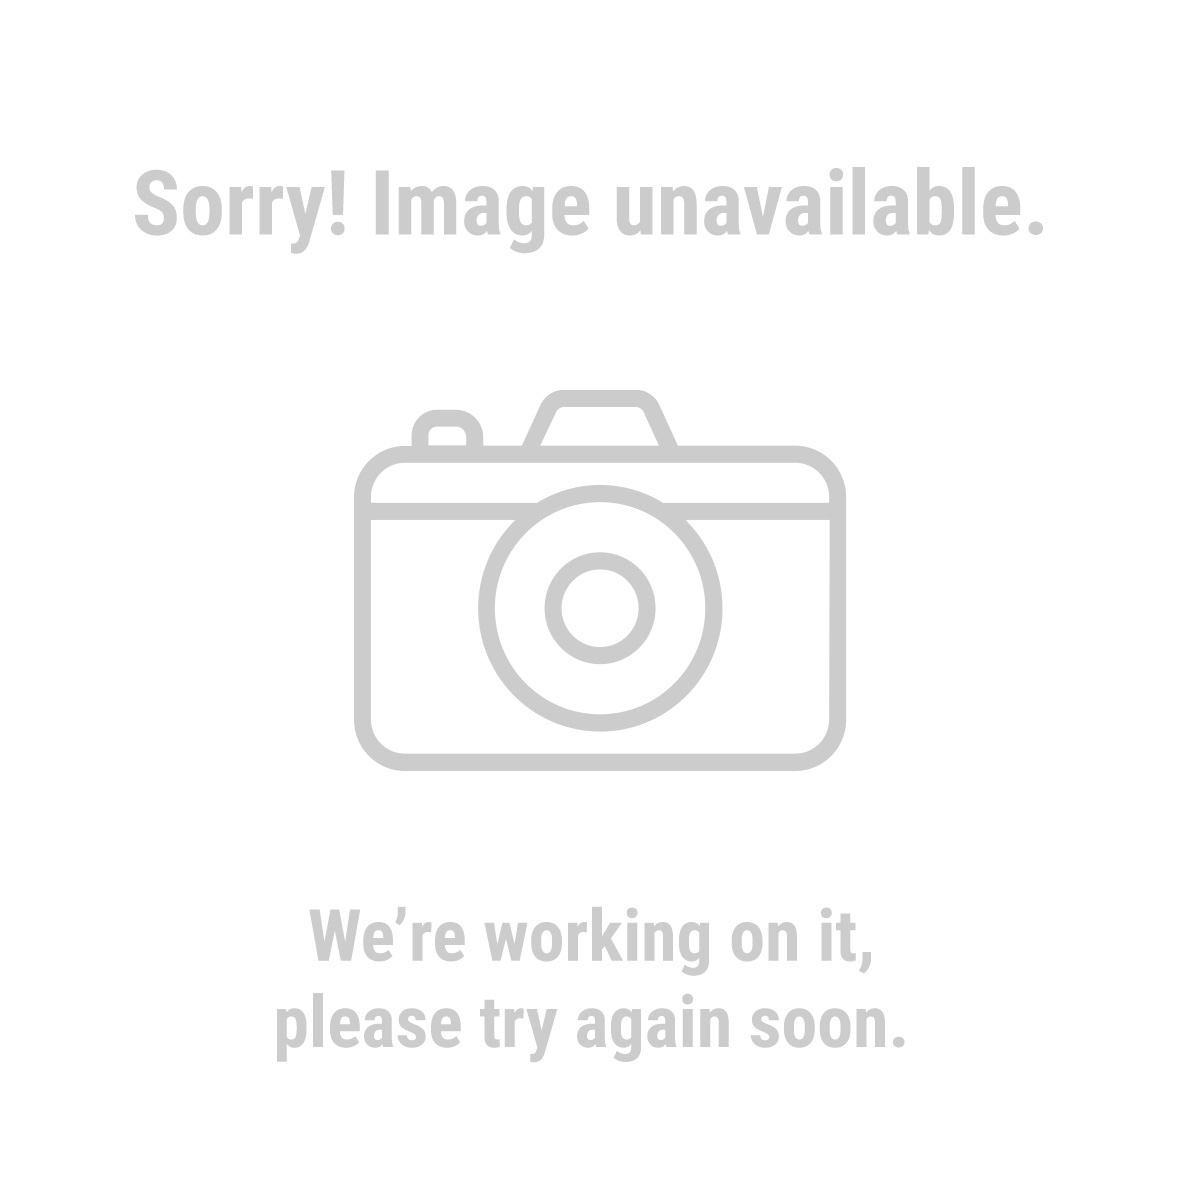 Storehouse 99896 12 Drawer Storage Organizer